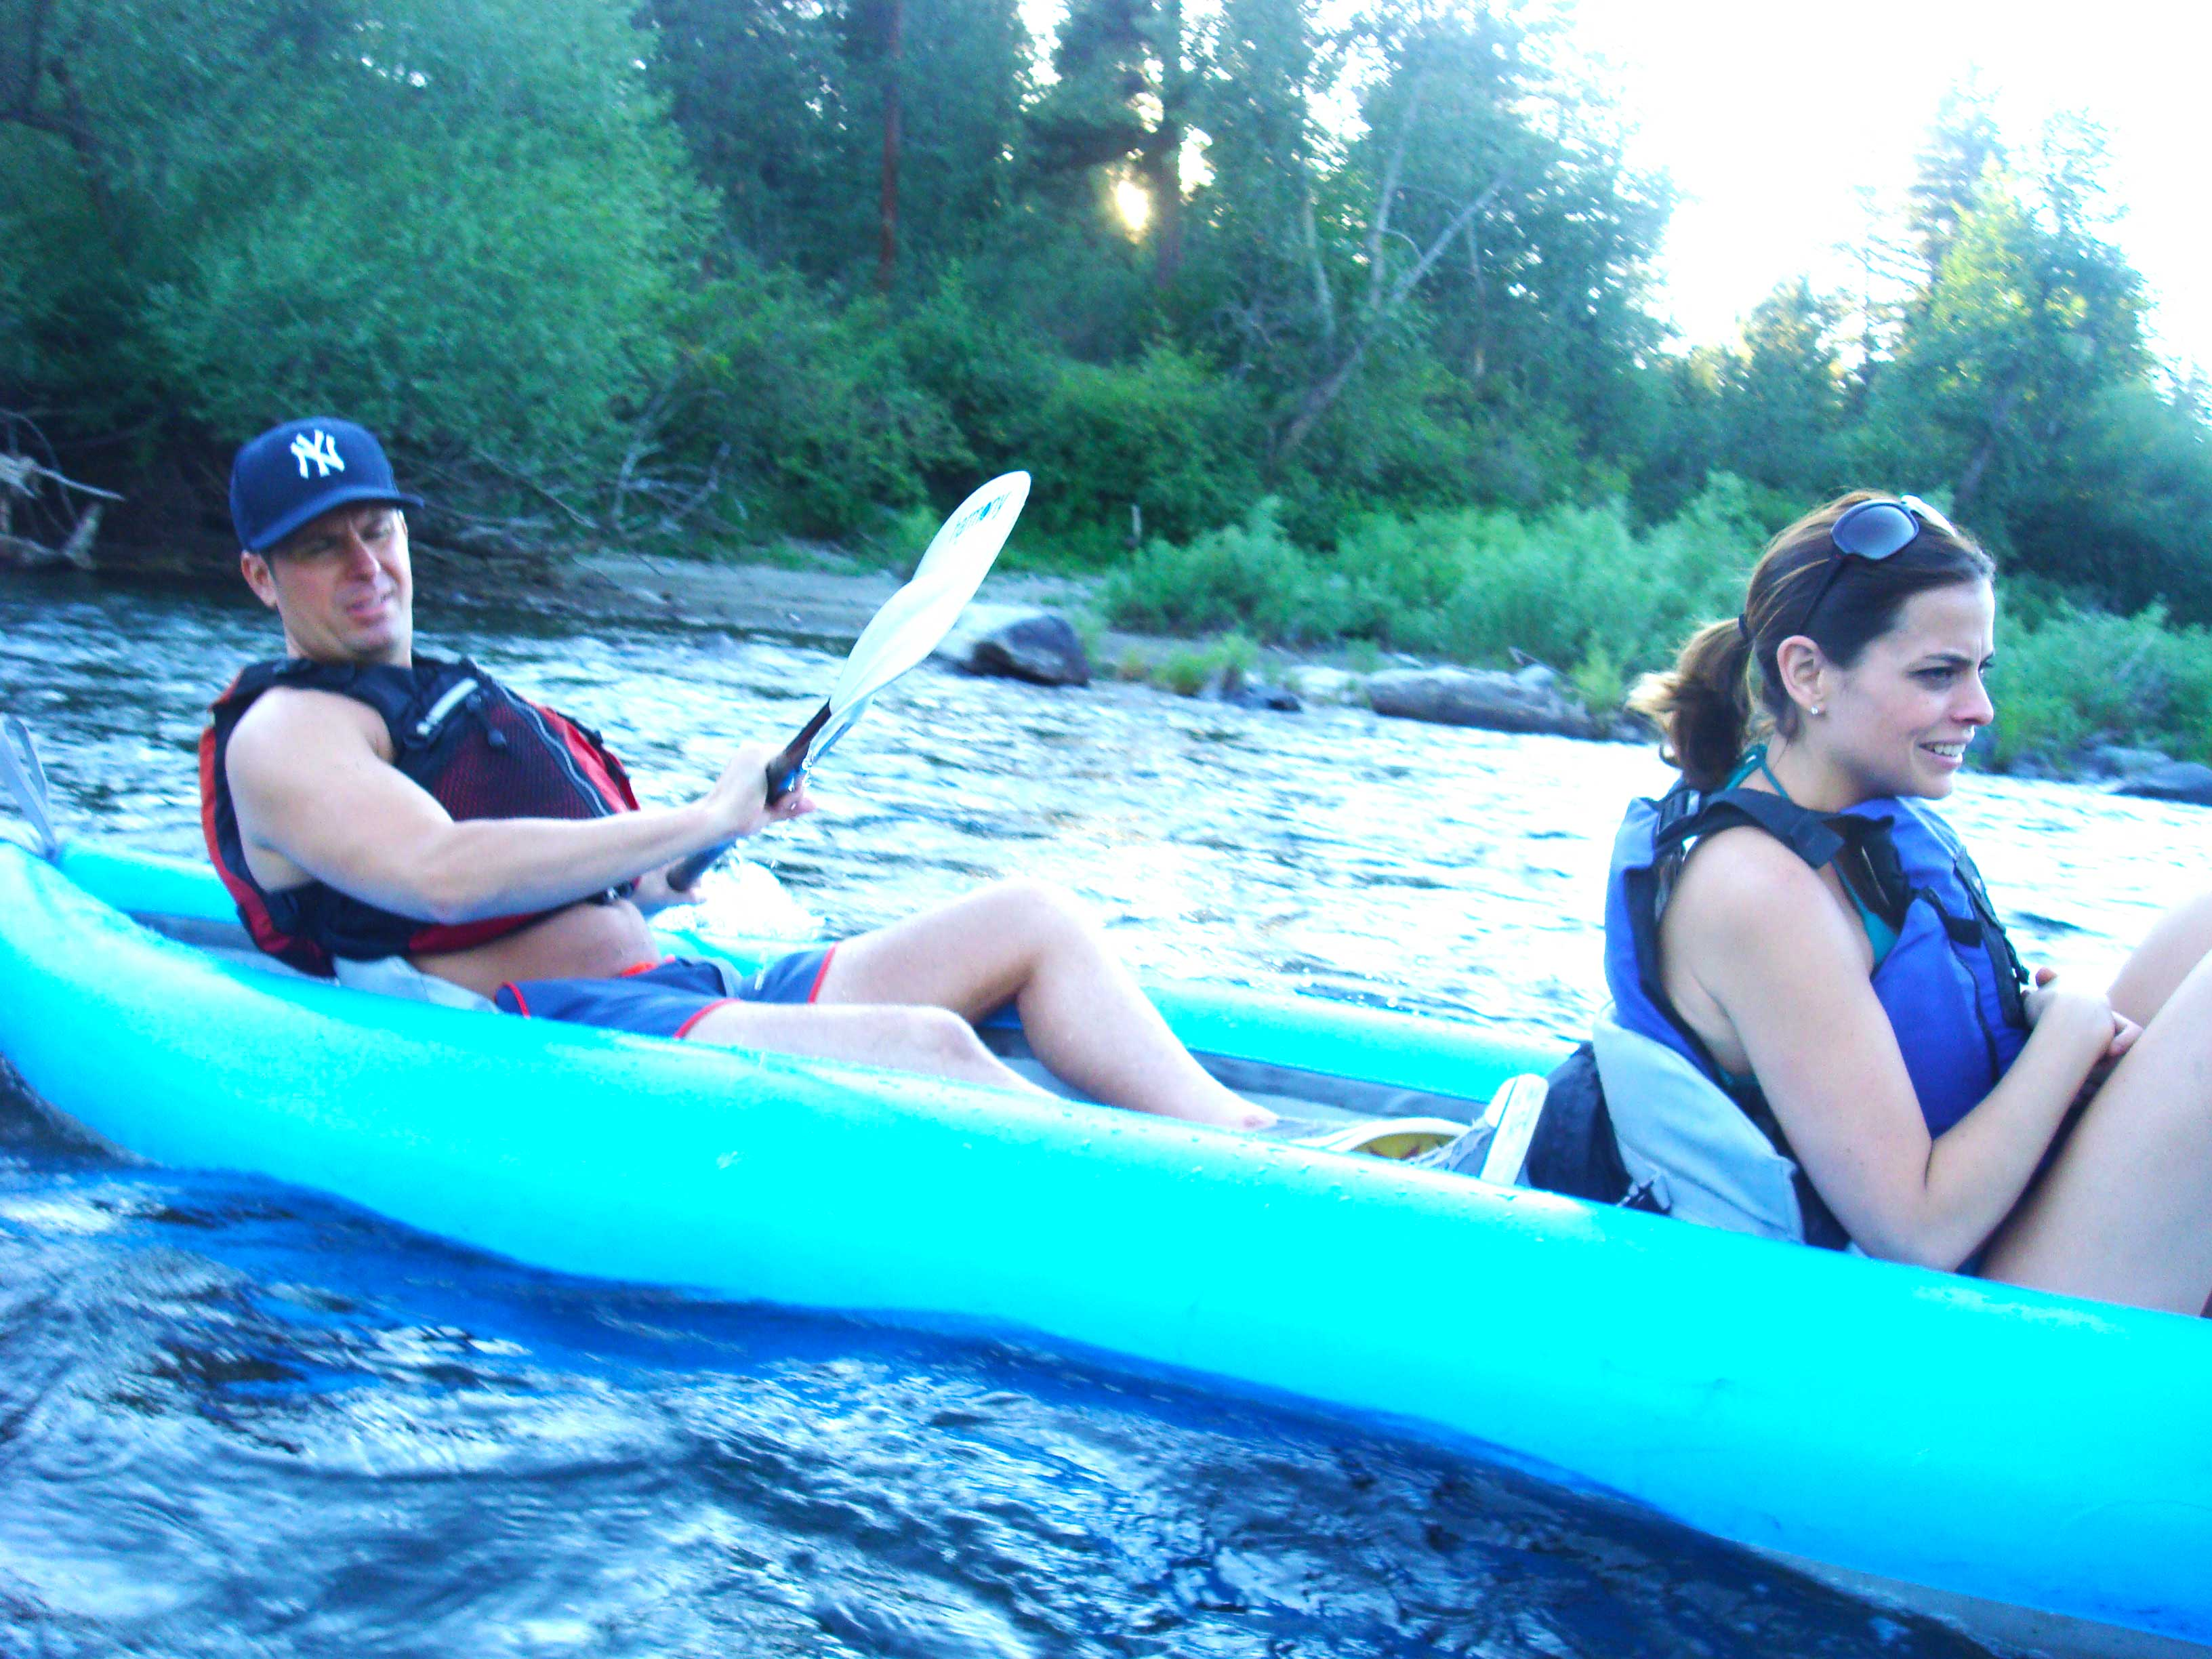 jon wilmot- floating the spokane river | out there outdoors